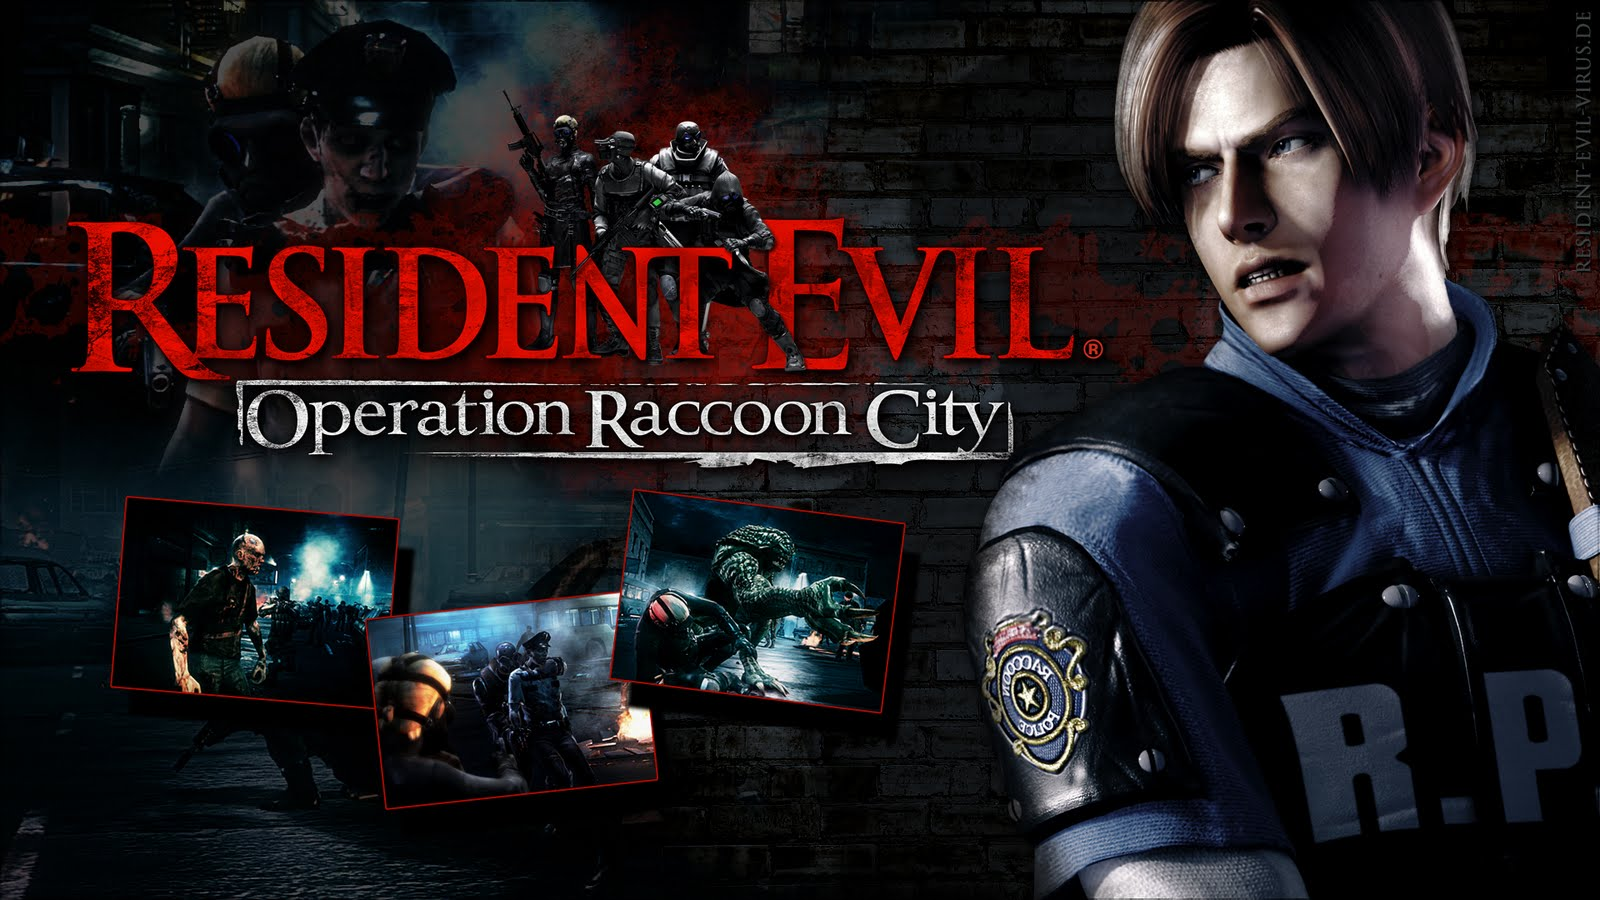 Resident evil: operation raccoon city full hd обои and фон.